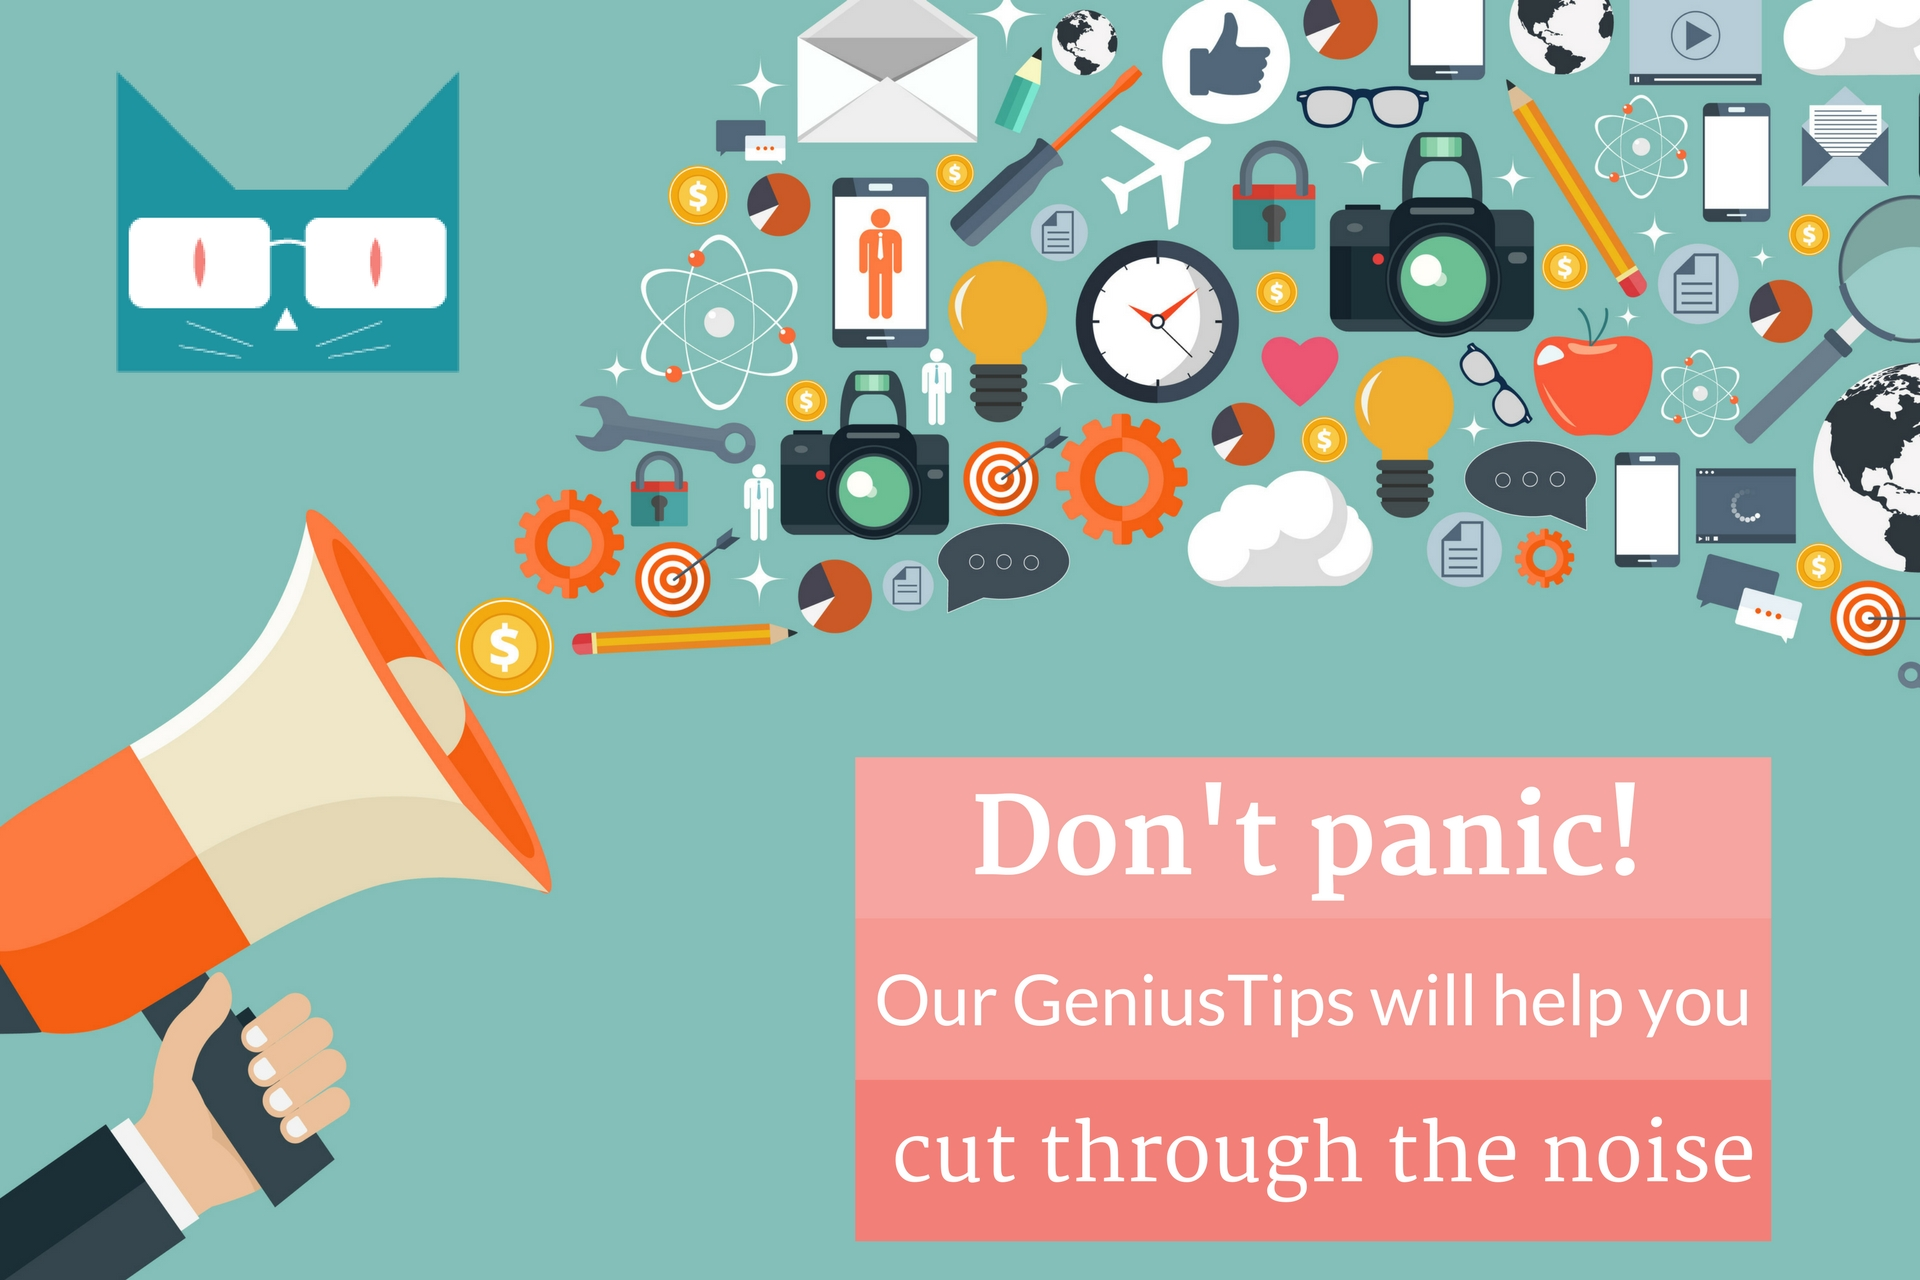 Don't Panic - Your GeniusVets Team is here to help!